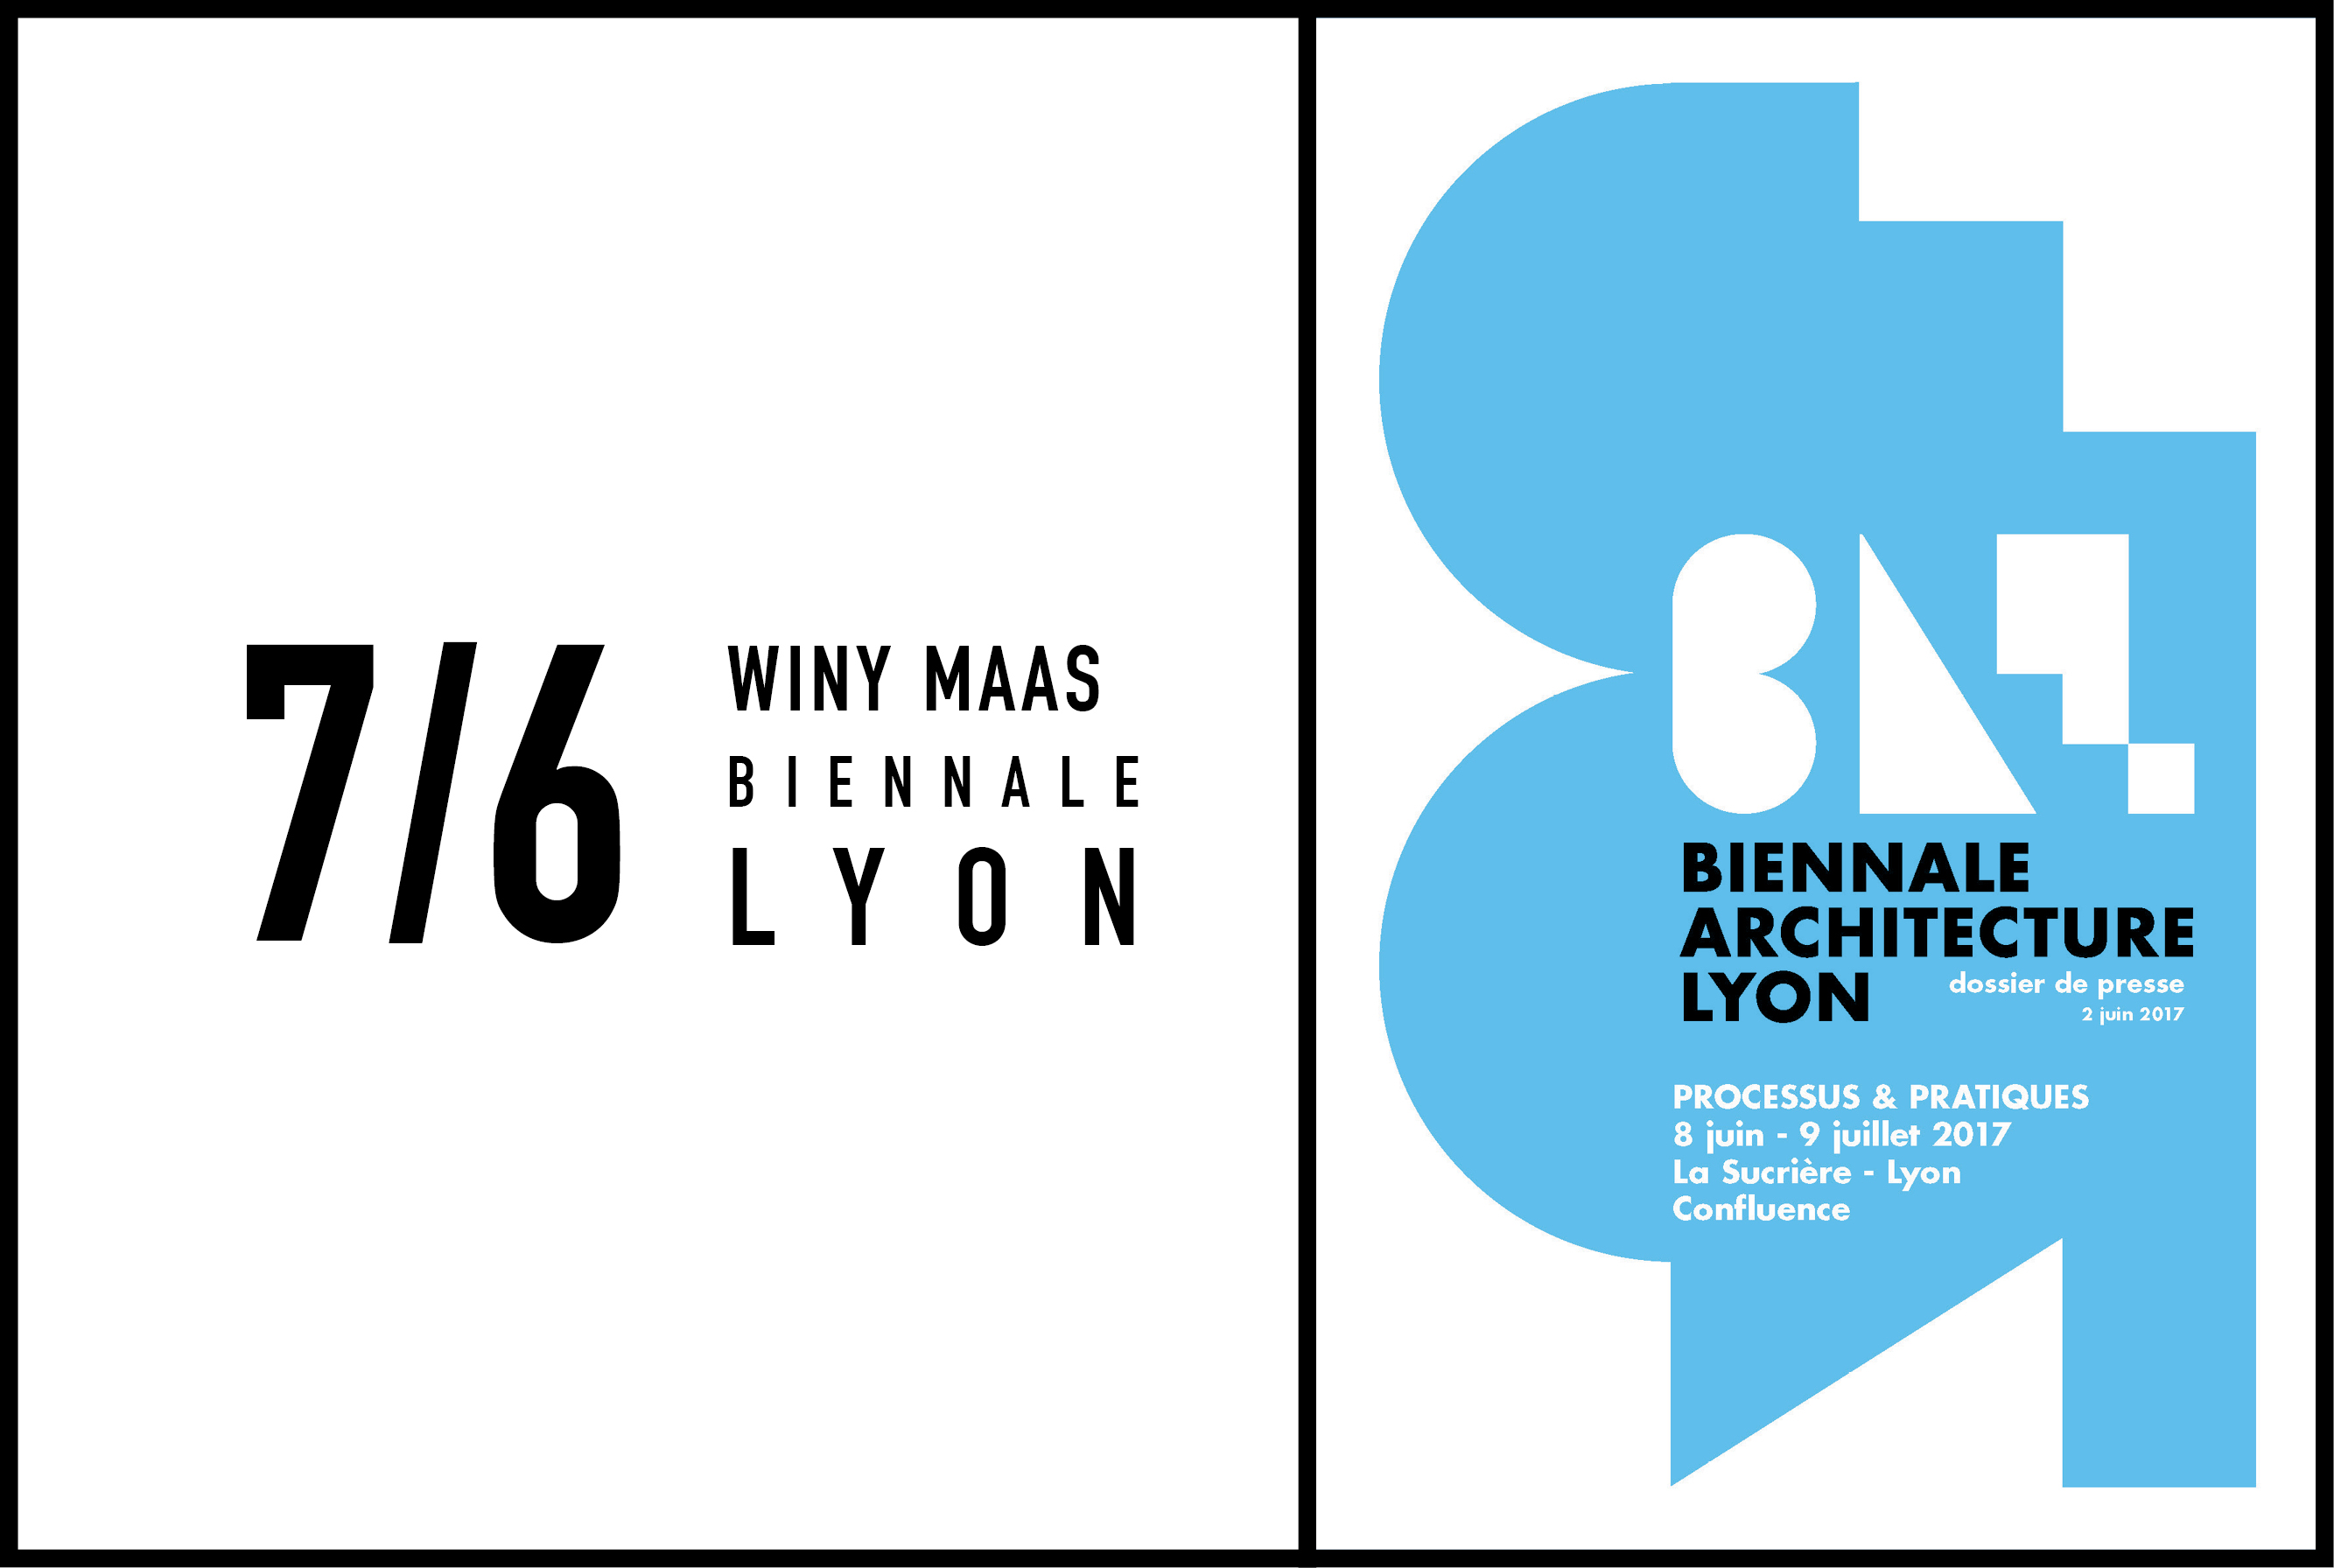 Winy Maas to give inaugural speech at Biennale Architecture Lyon, 7 June 2017